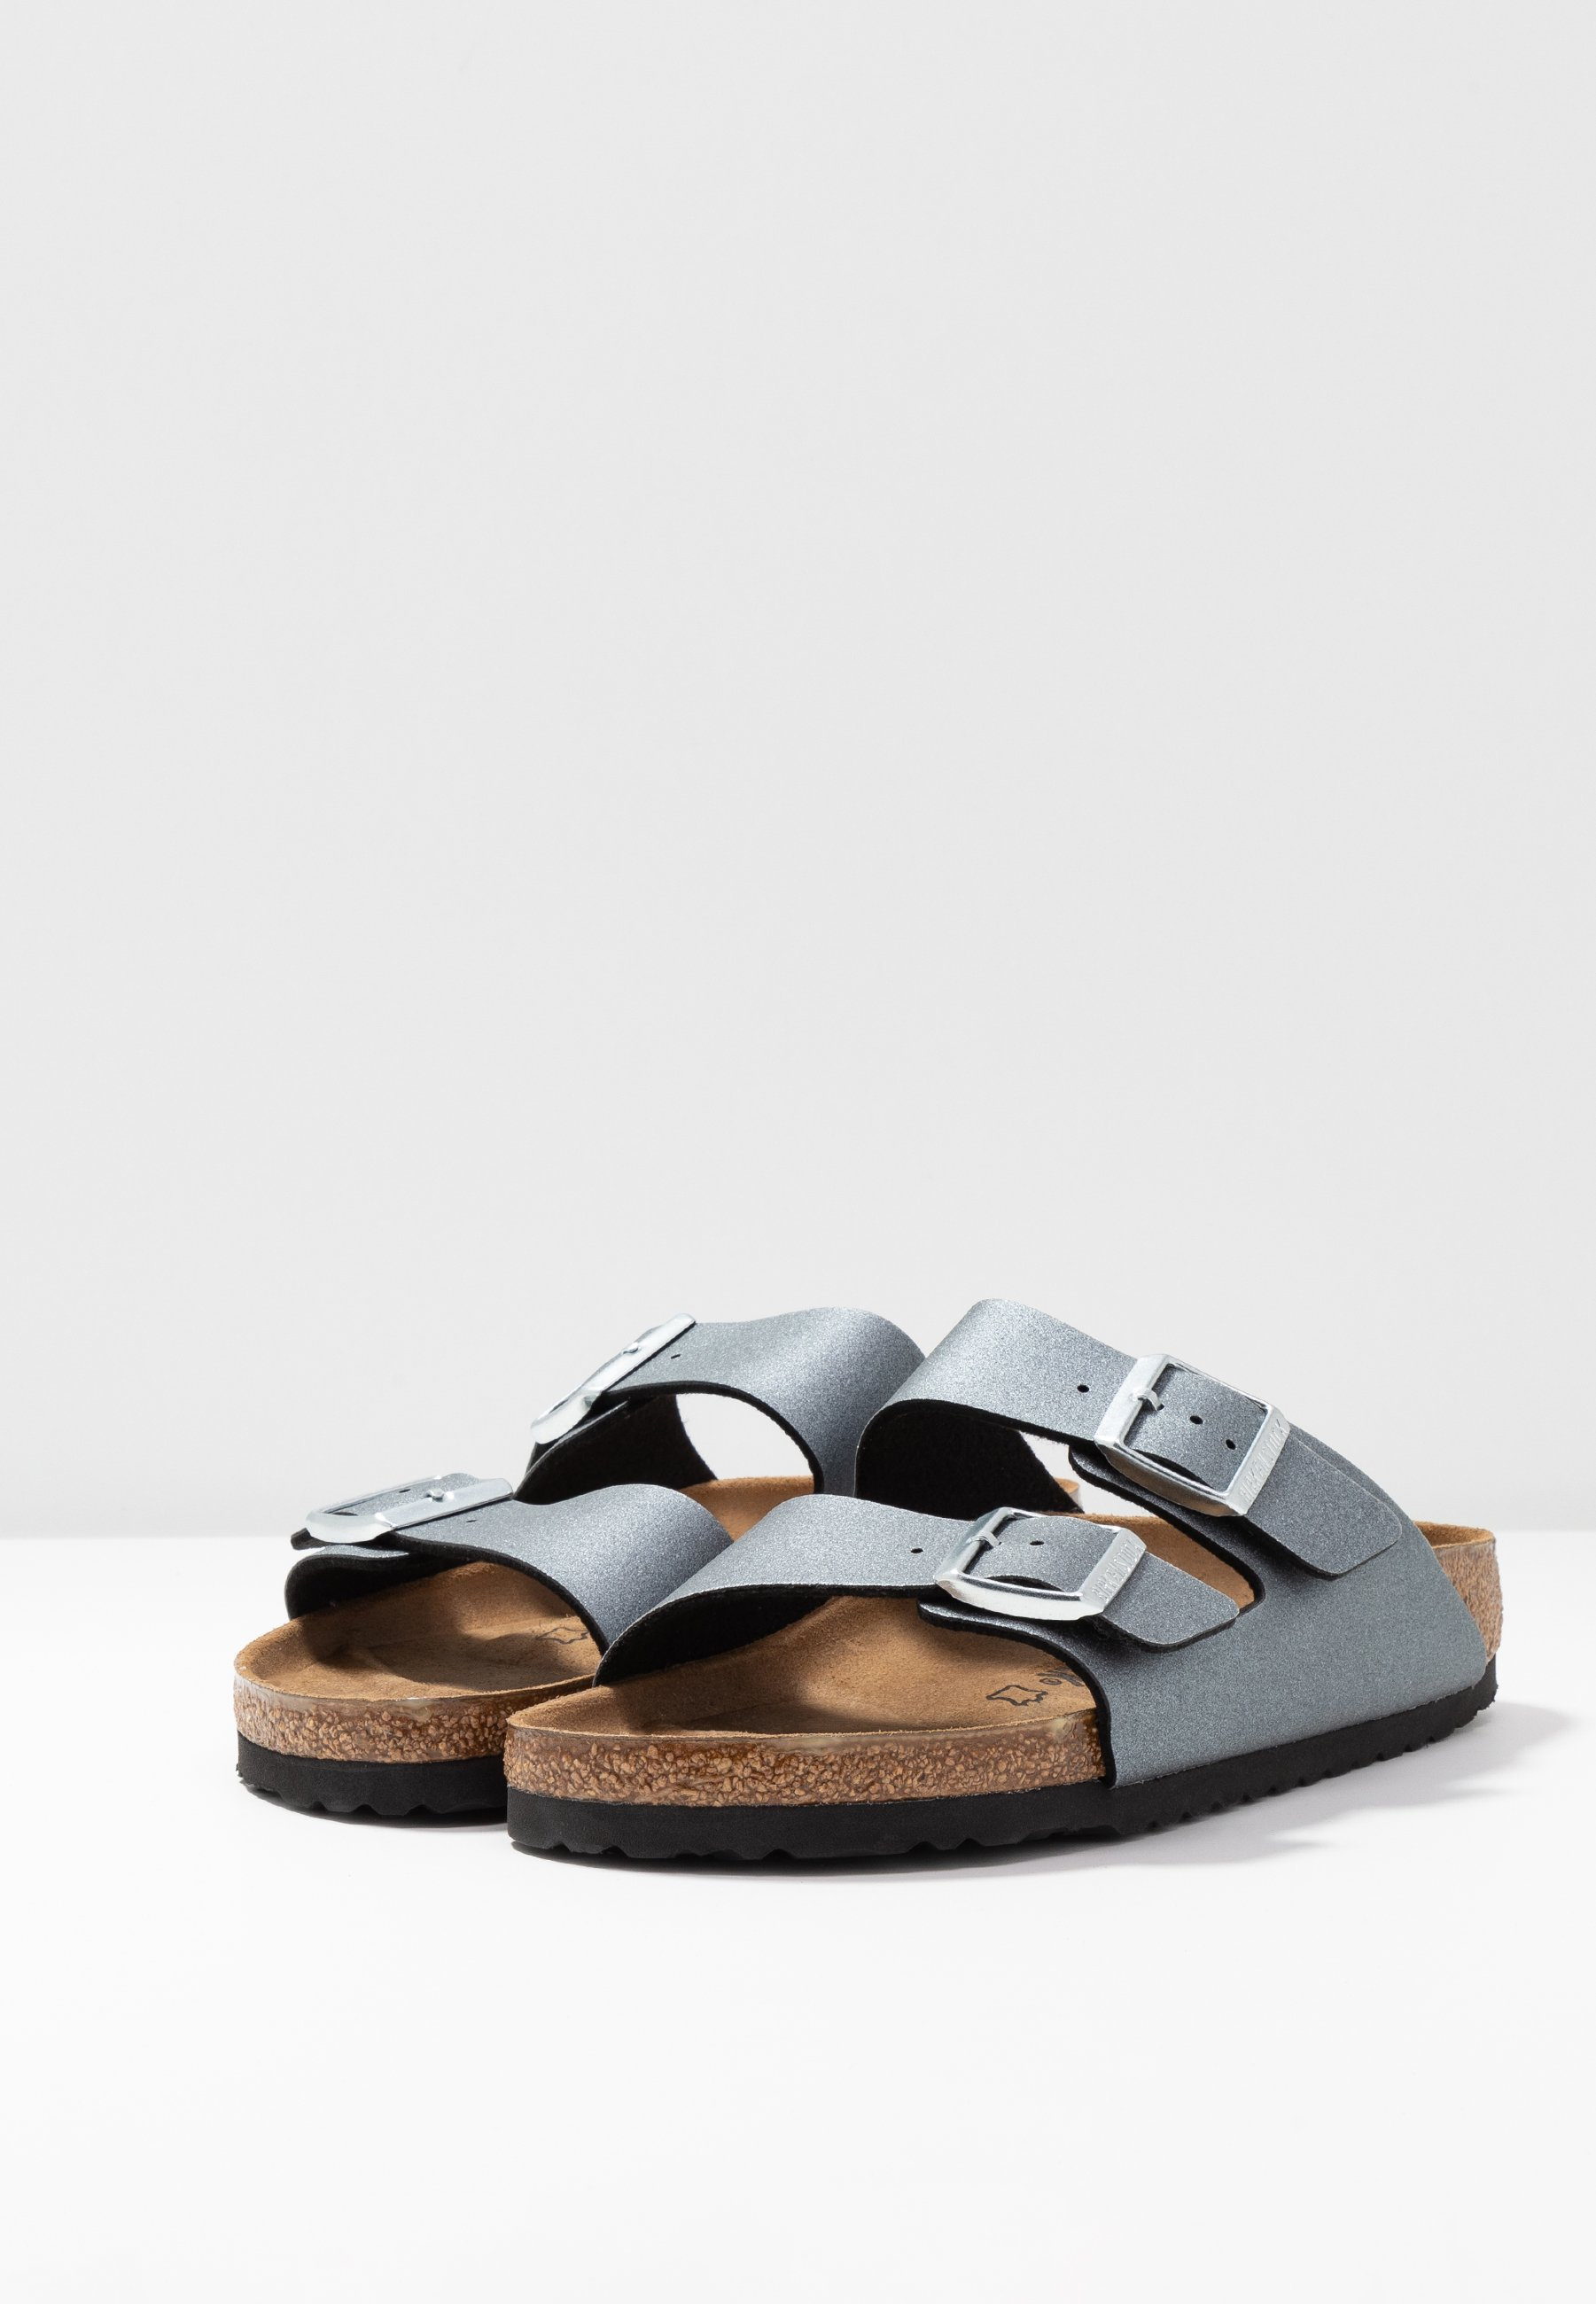 Birkenstock ARIZONA Hausschuh icy metallic anthracite/gunmetal